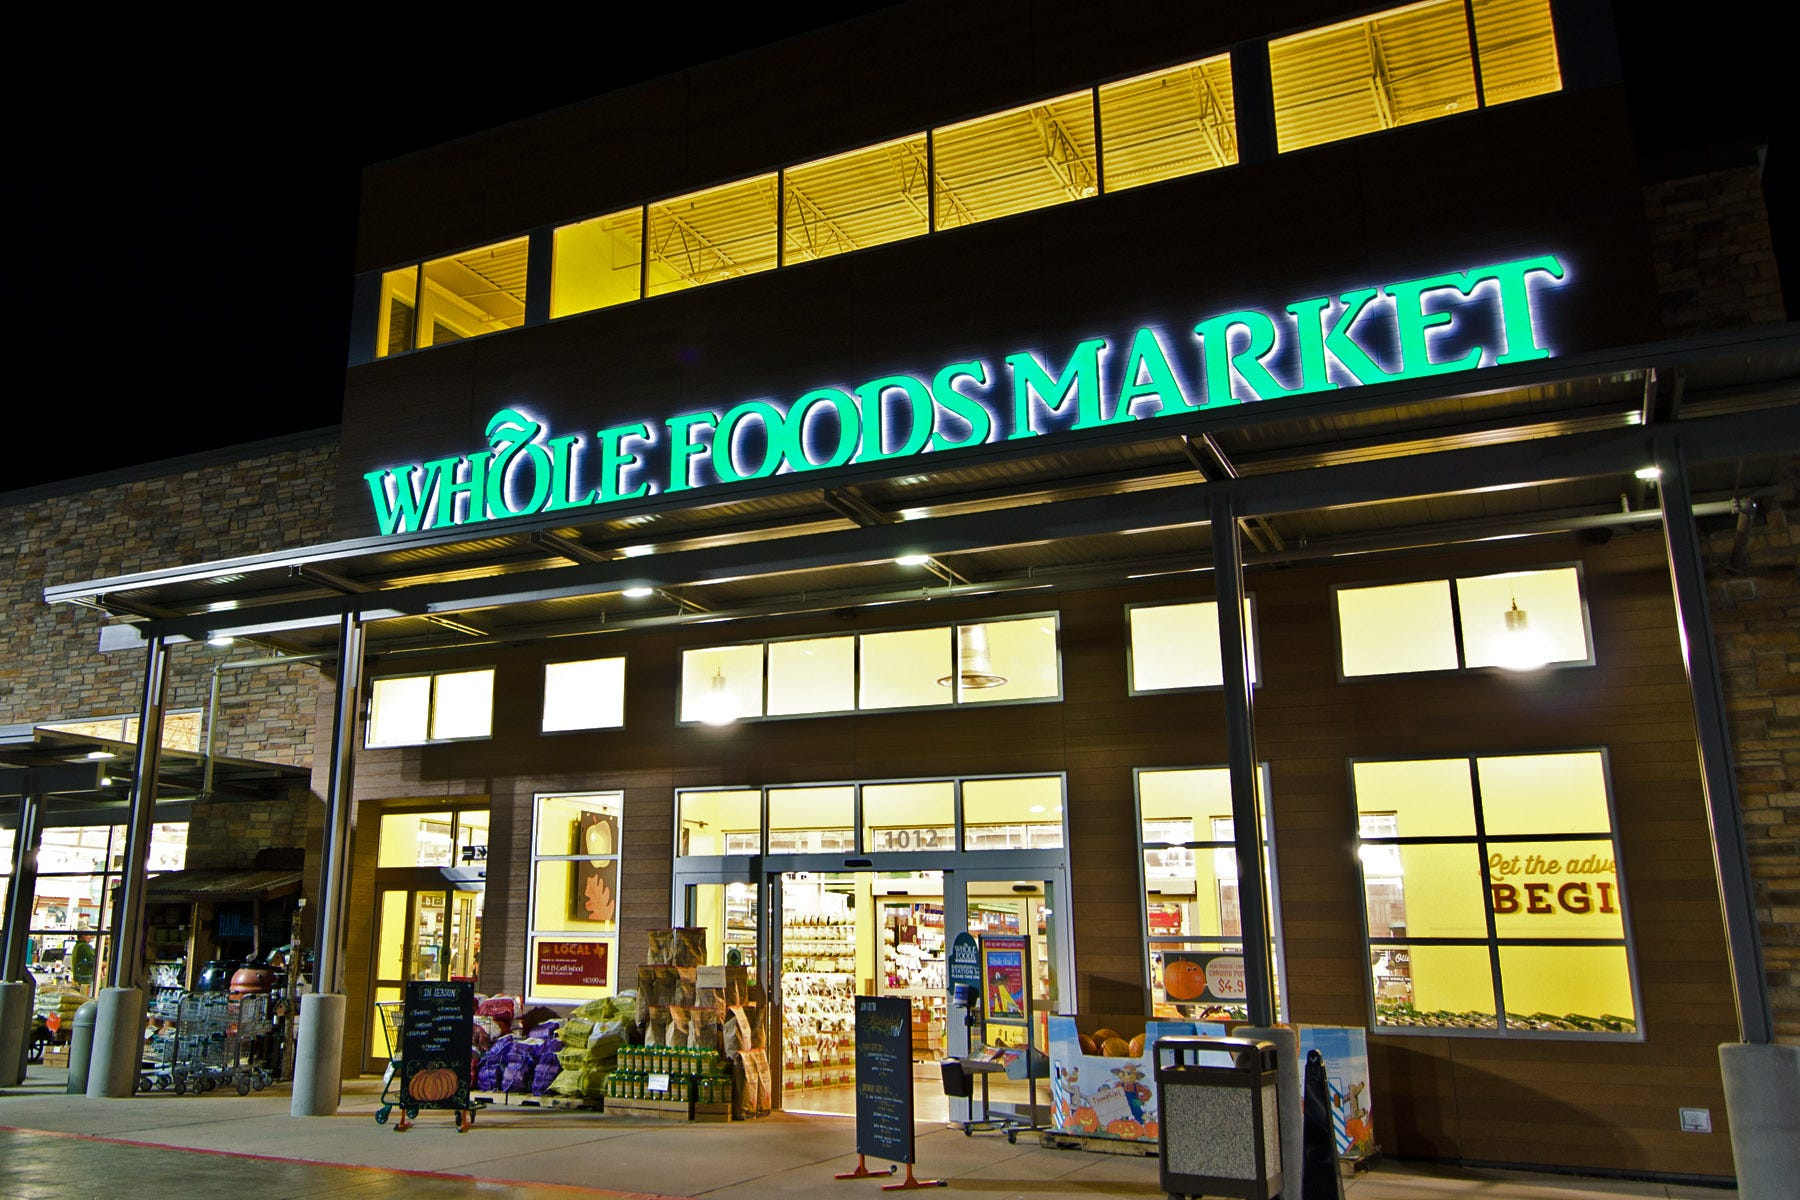 Amazon's Whole Foods to cut health benefits for part-time workers